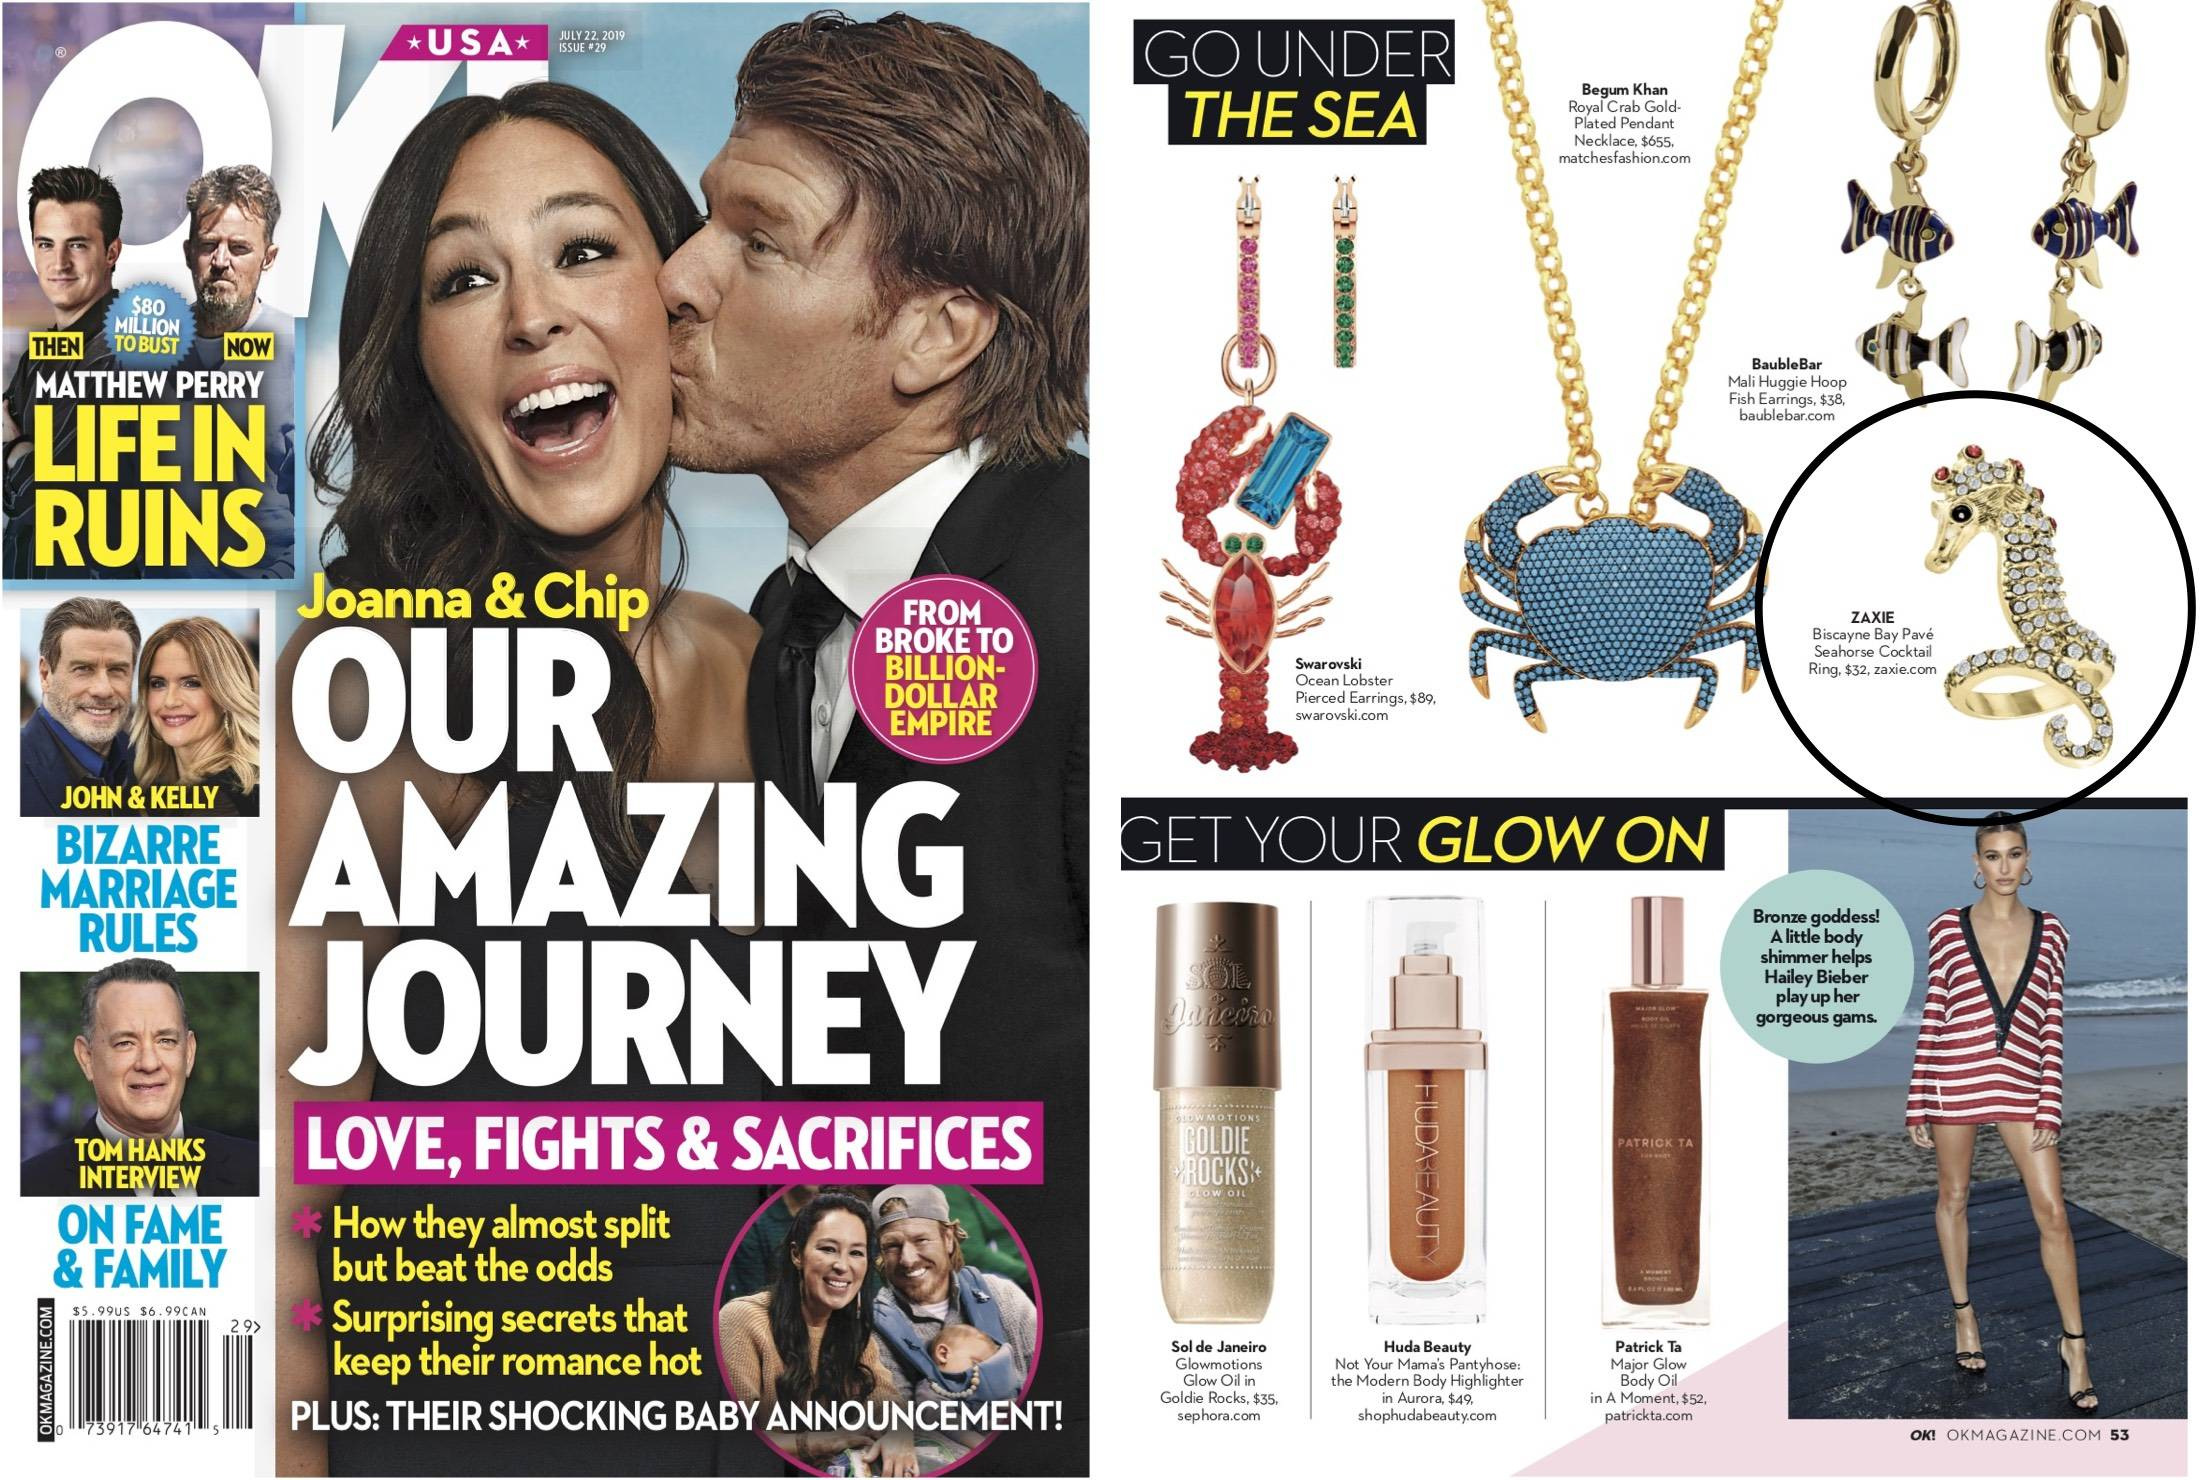 ZAXIE Seahorse ring in US weekly